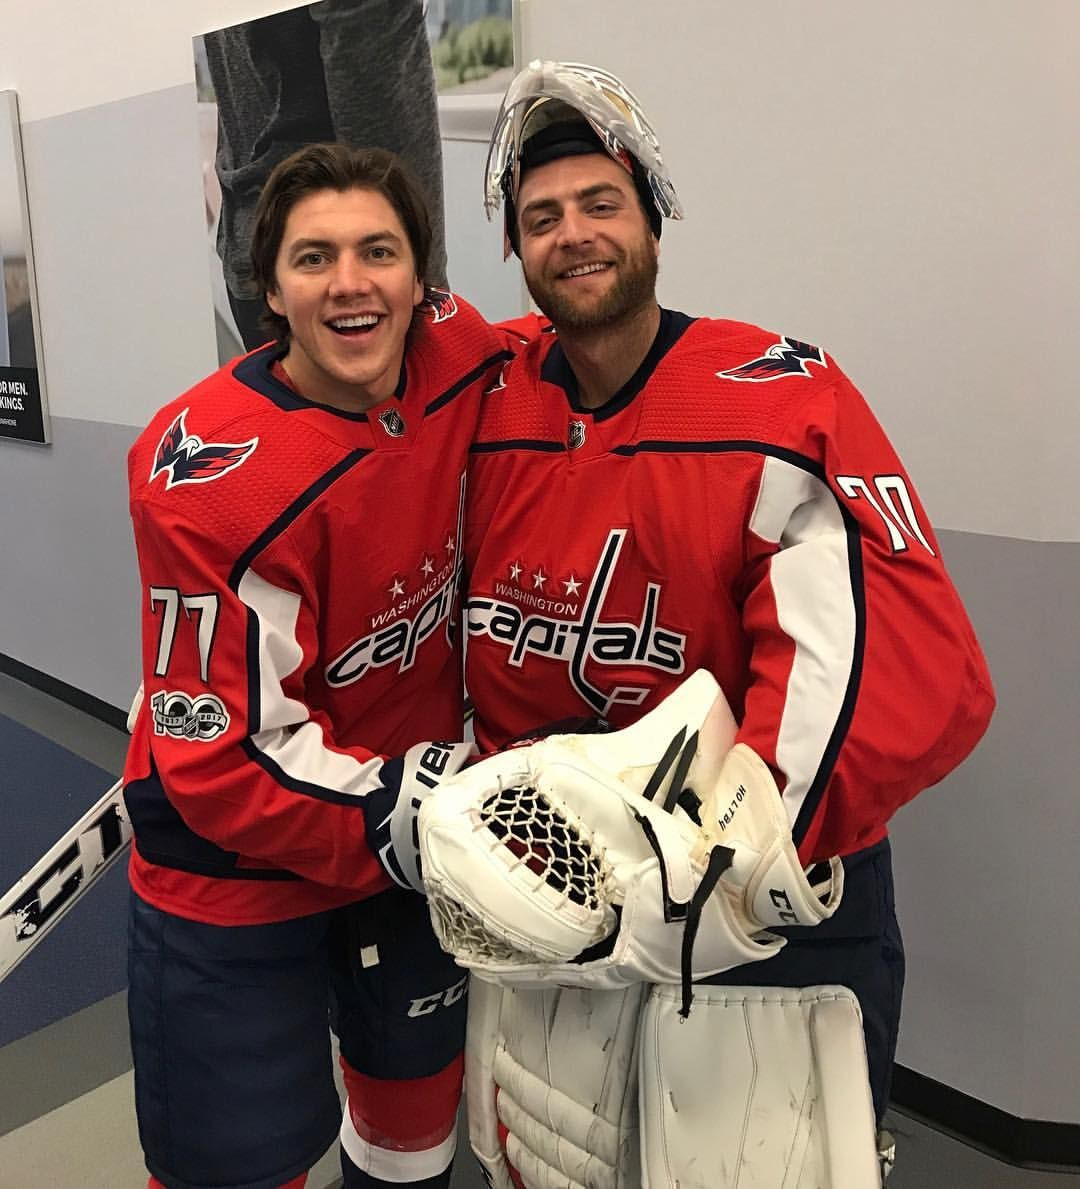 Cuties Holtby Oshie 12 9k Likes 114 Comments Washington Capitals Capitals On Instagram Washington Capitals Hockey Capitals Hockey Hockey Players